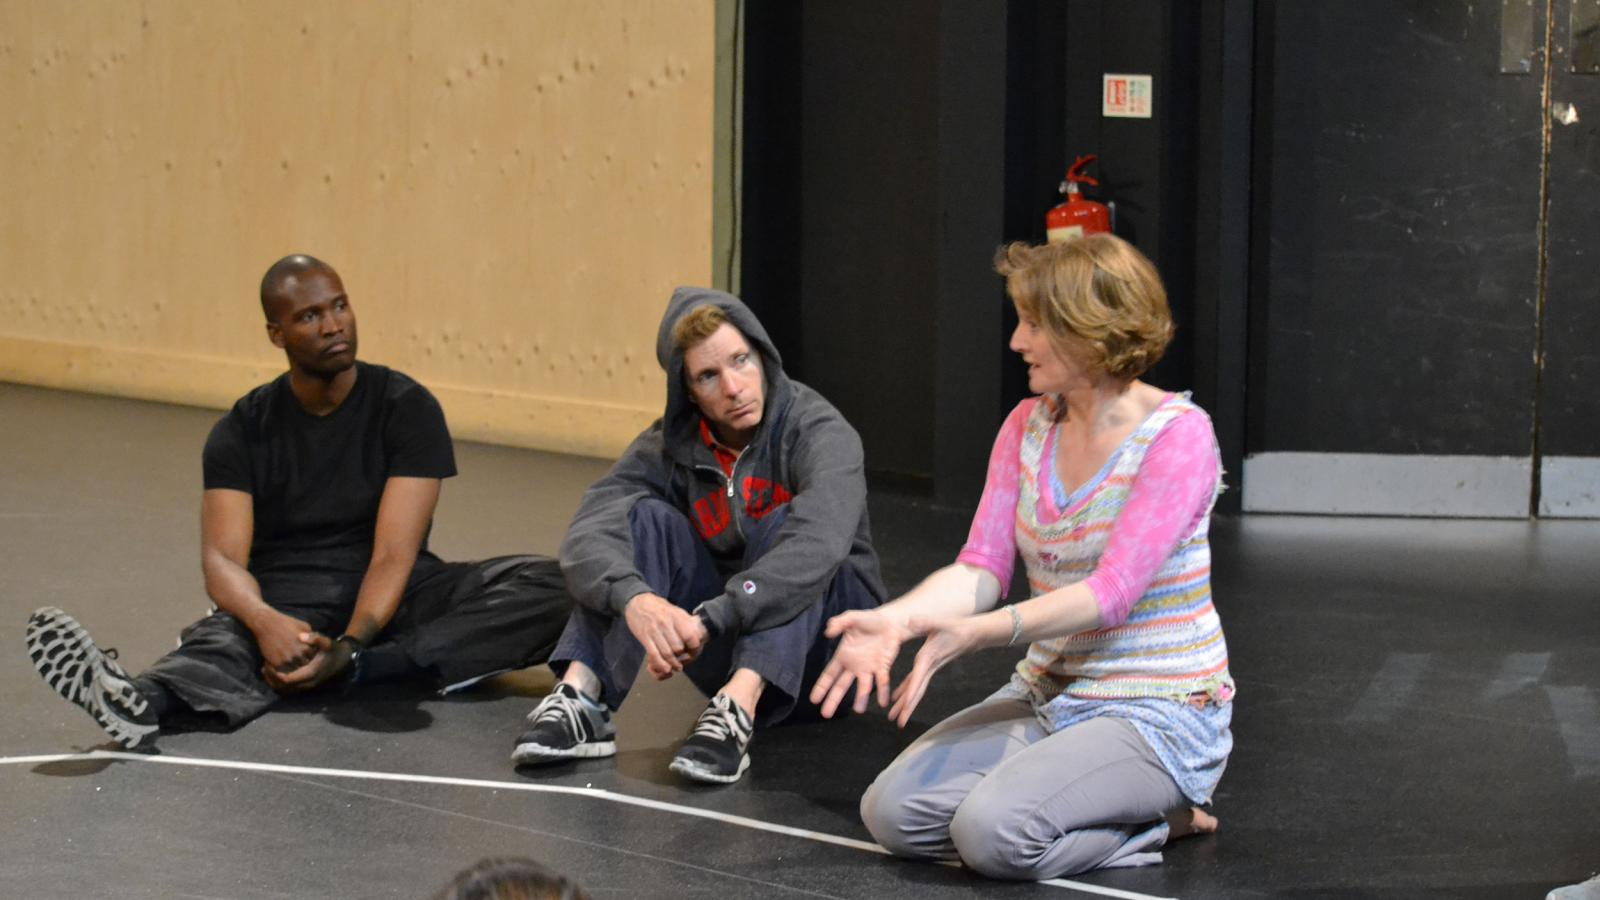 Two graduate students train with a member of the RSC in Stratford-upon-Avon.